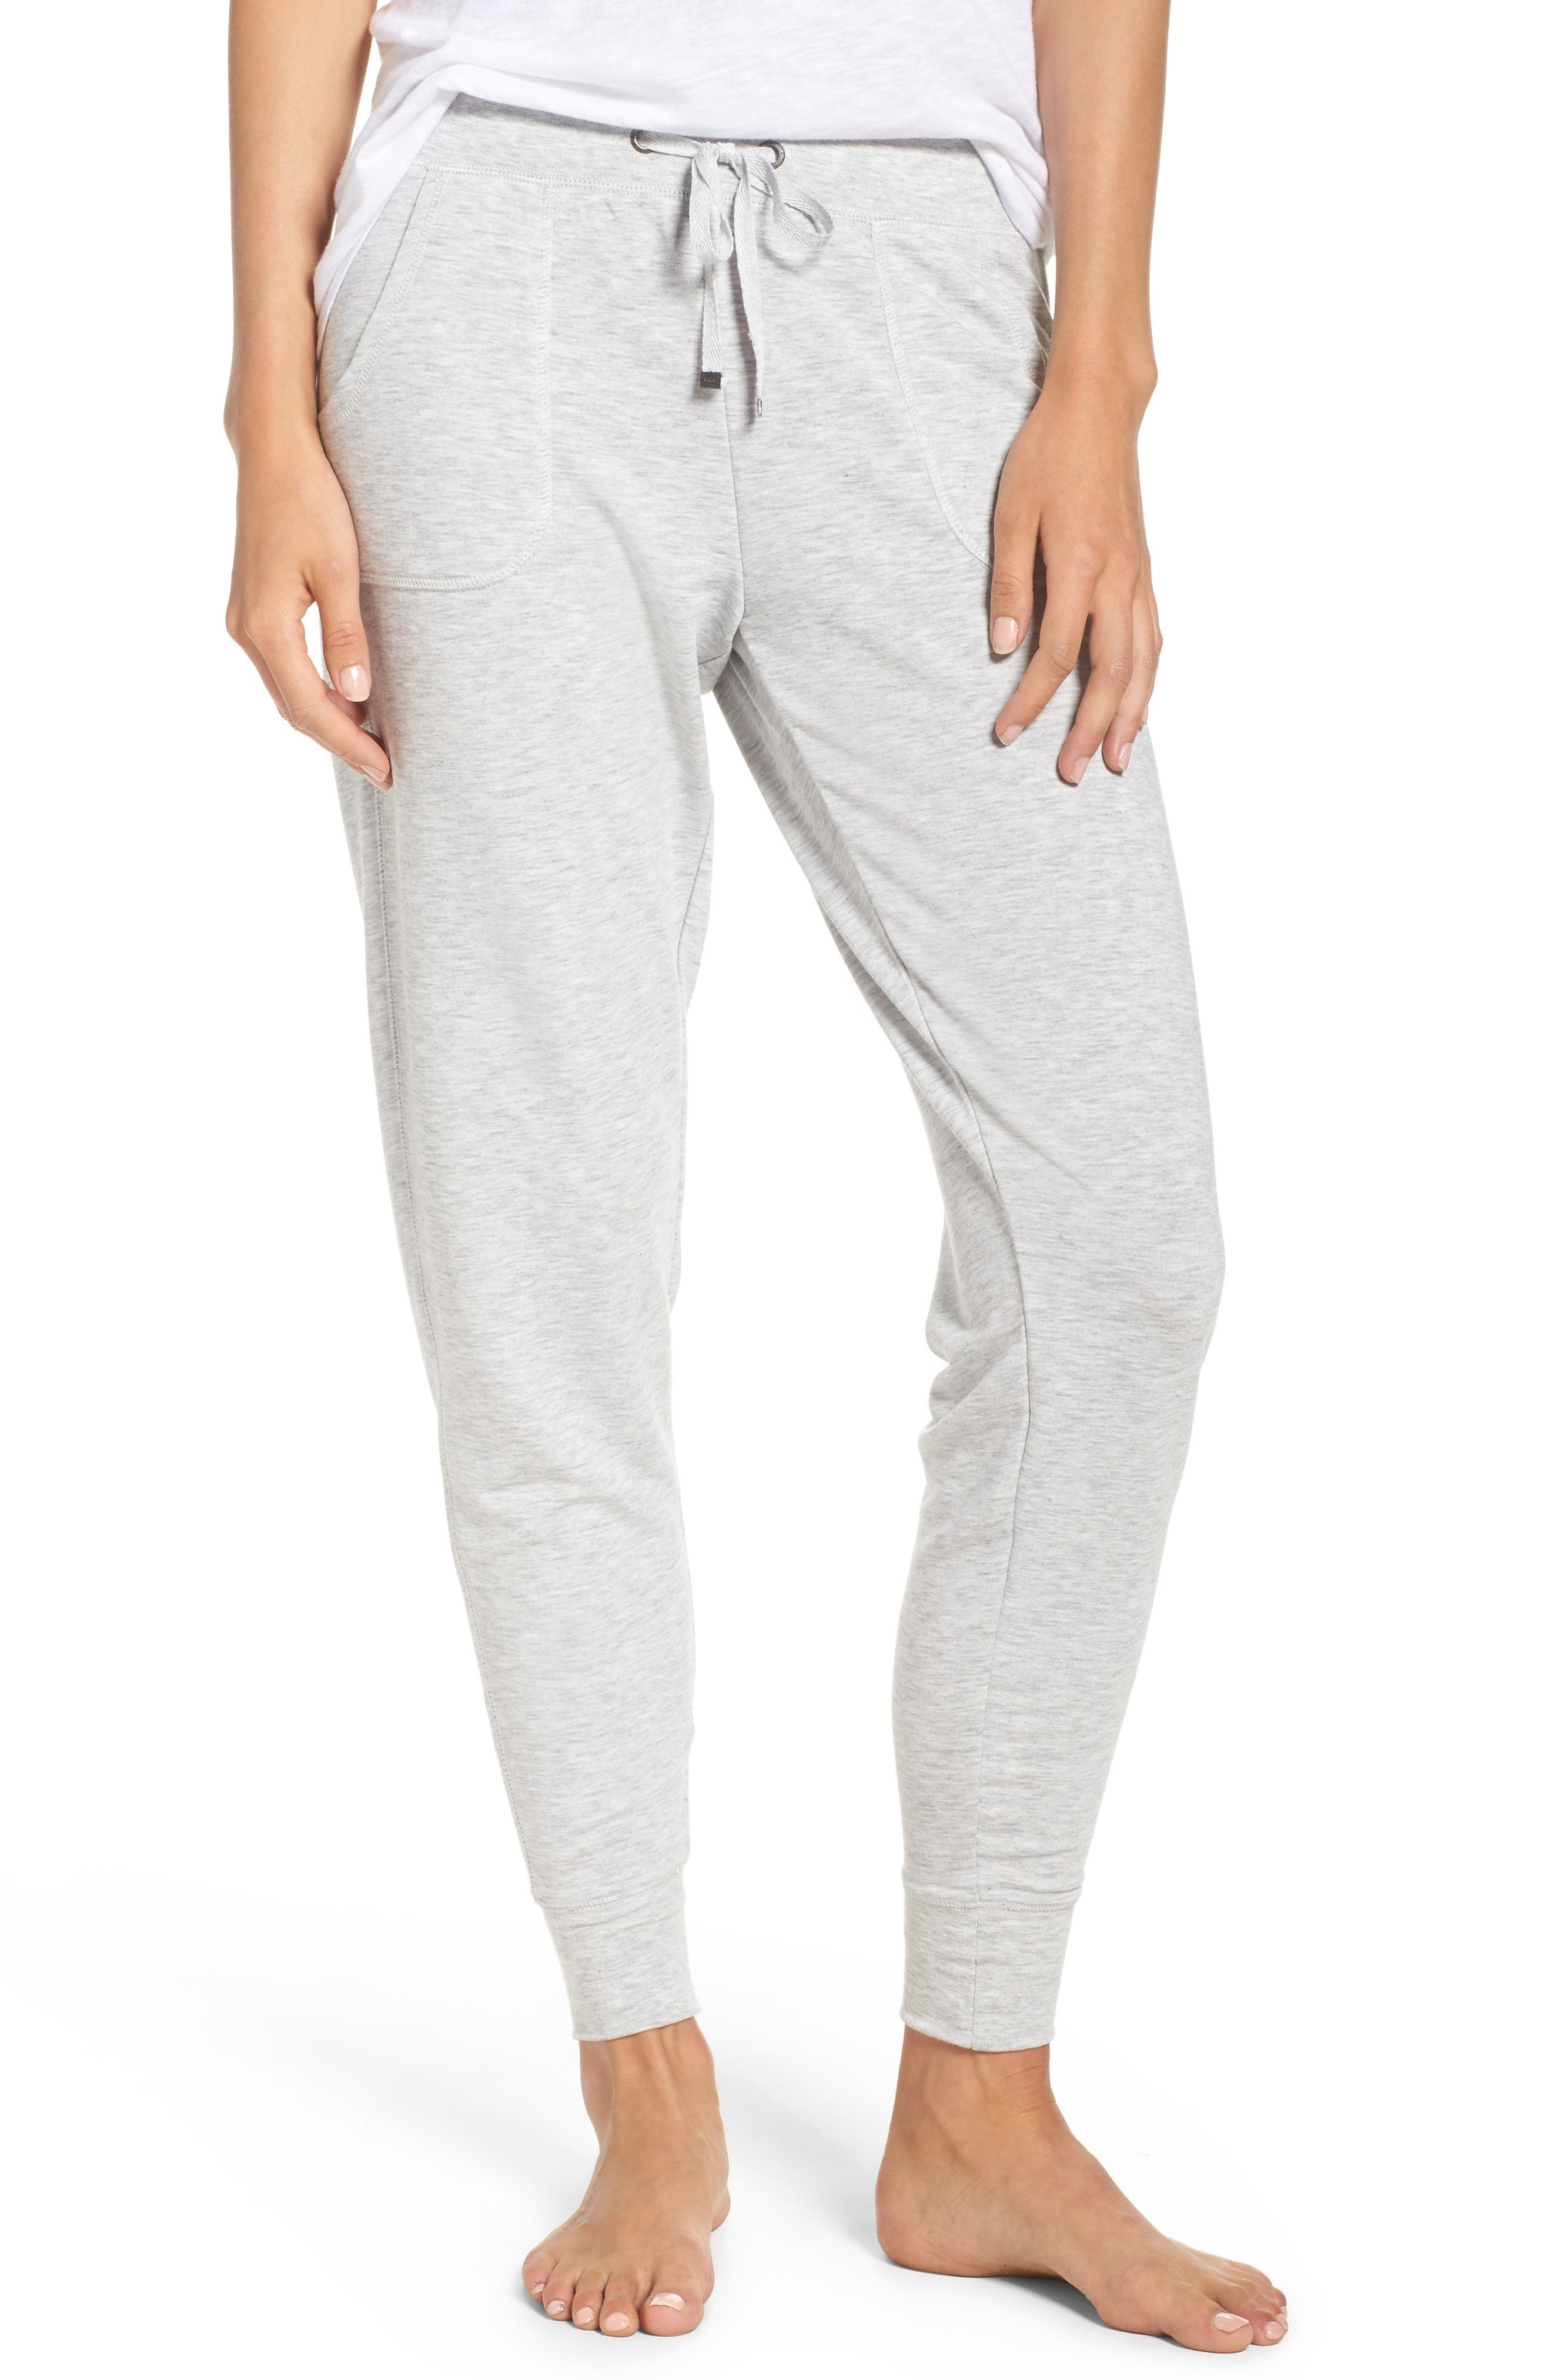 All About It Lounge Pants,                             Main thumbnail 2, color,